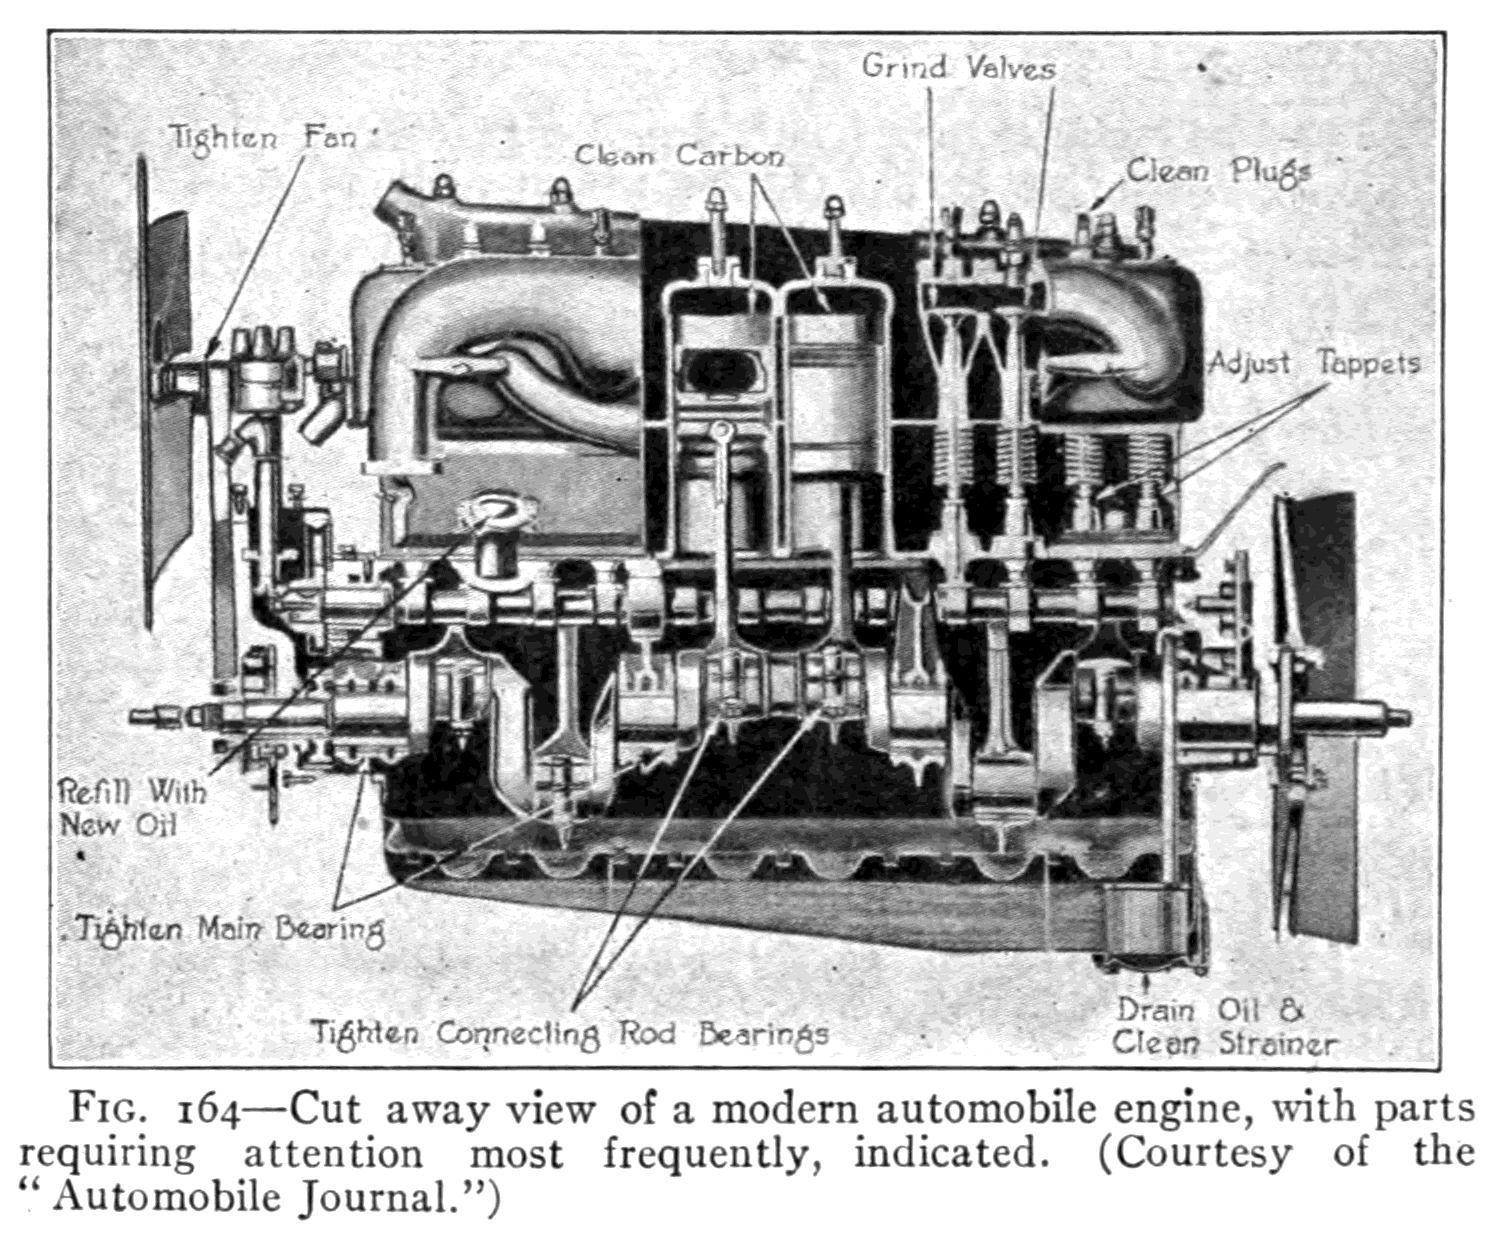 Heat And Work Auto Mobile Engine Diagram Cut Away View Of A Modern Automobile With Parts Requiring Attention Most Frequently Indicated Courtesy The Journal